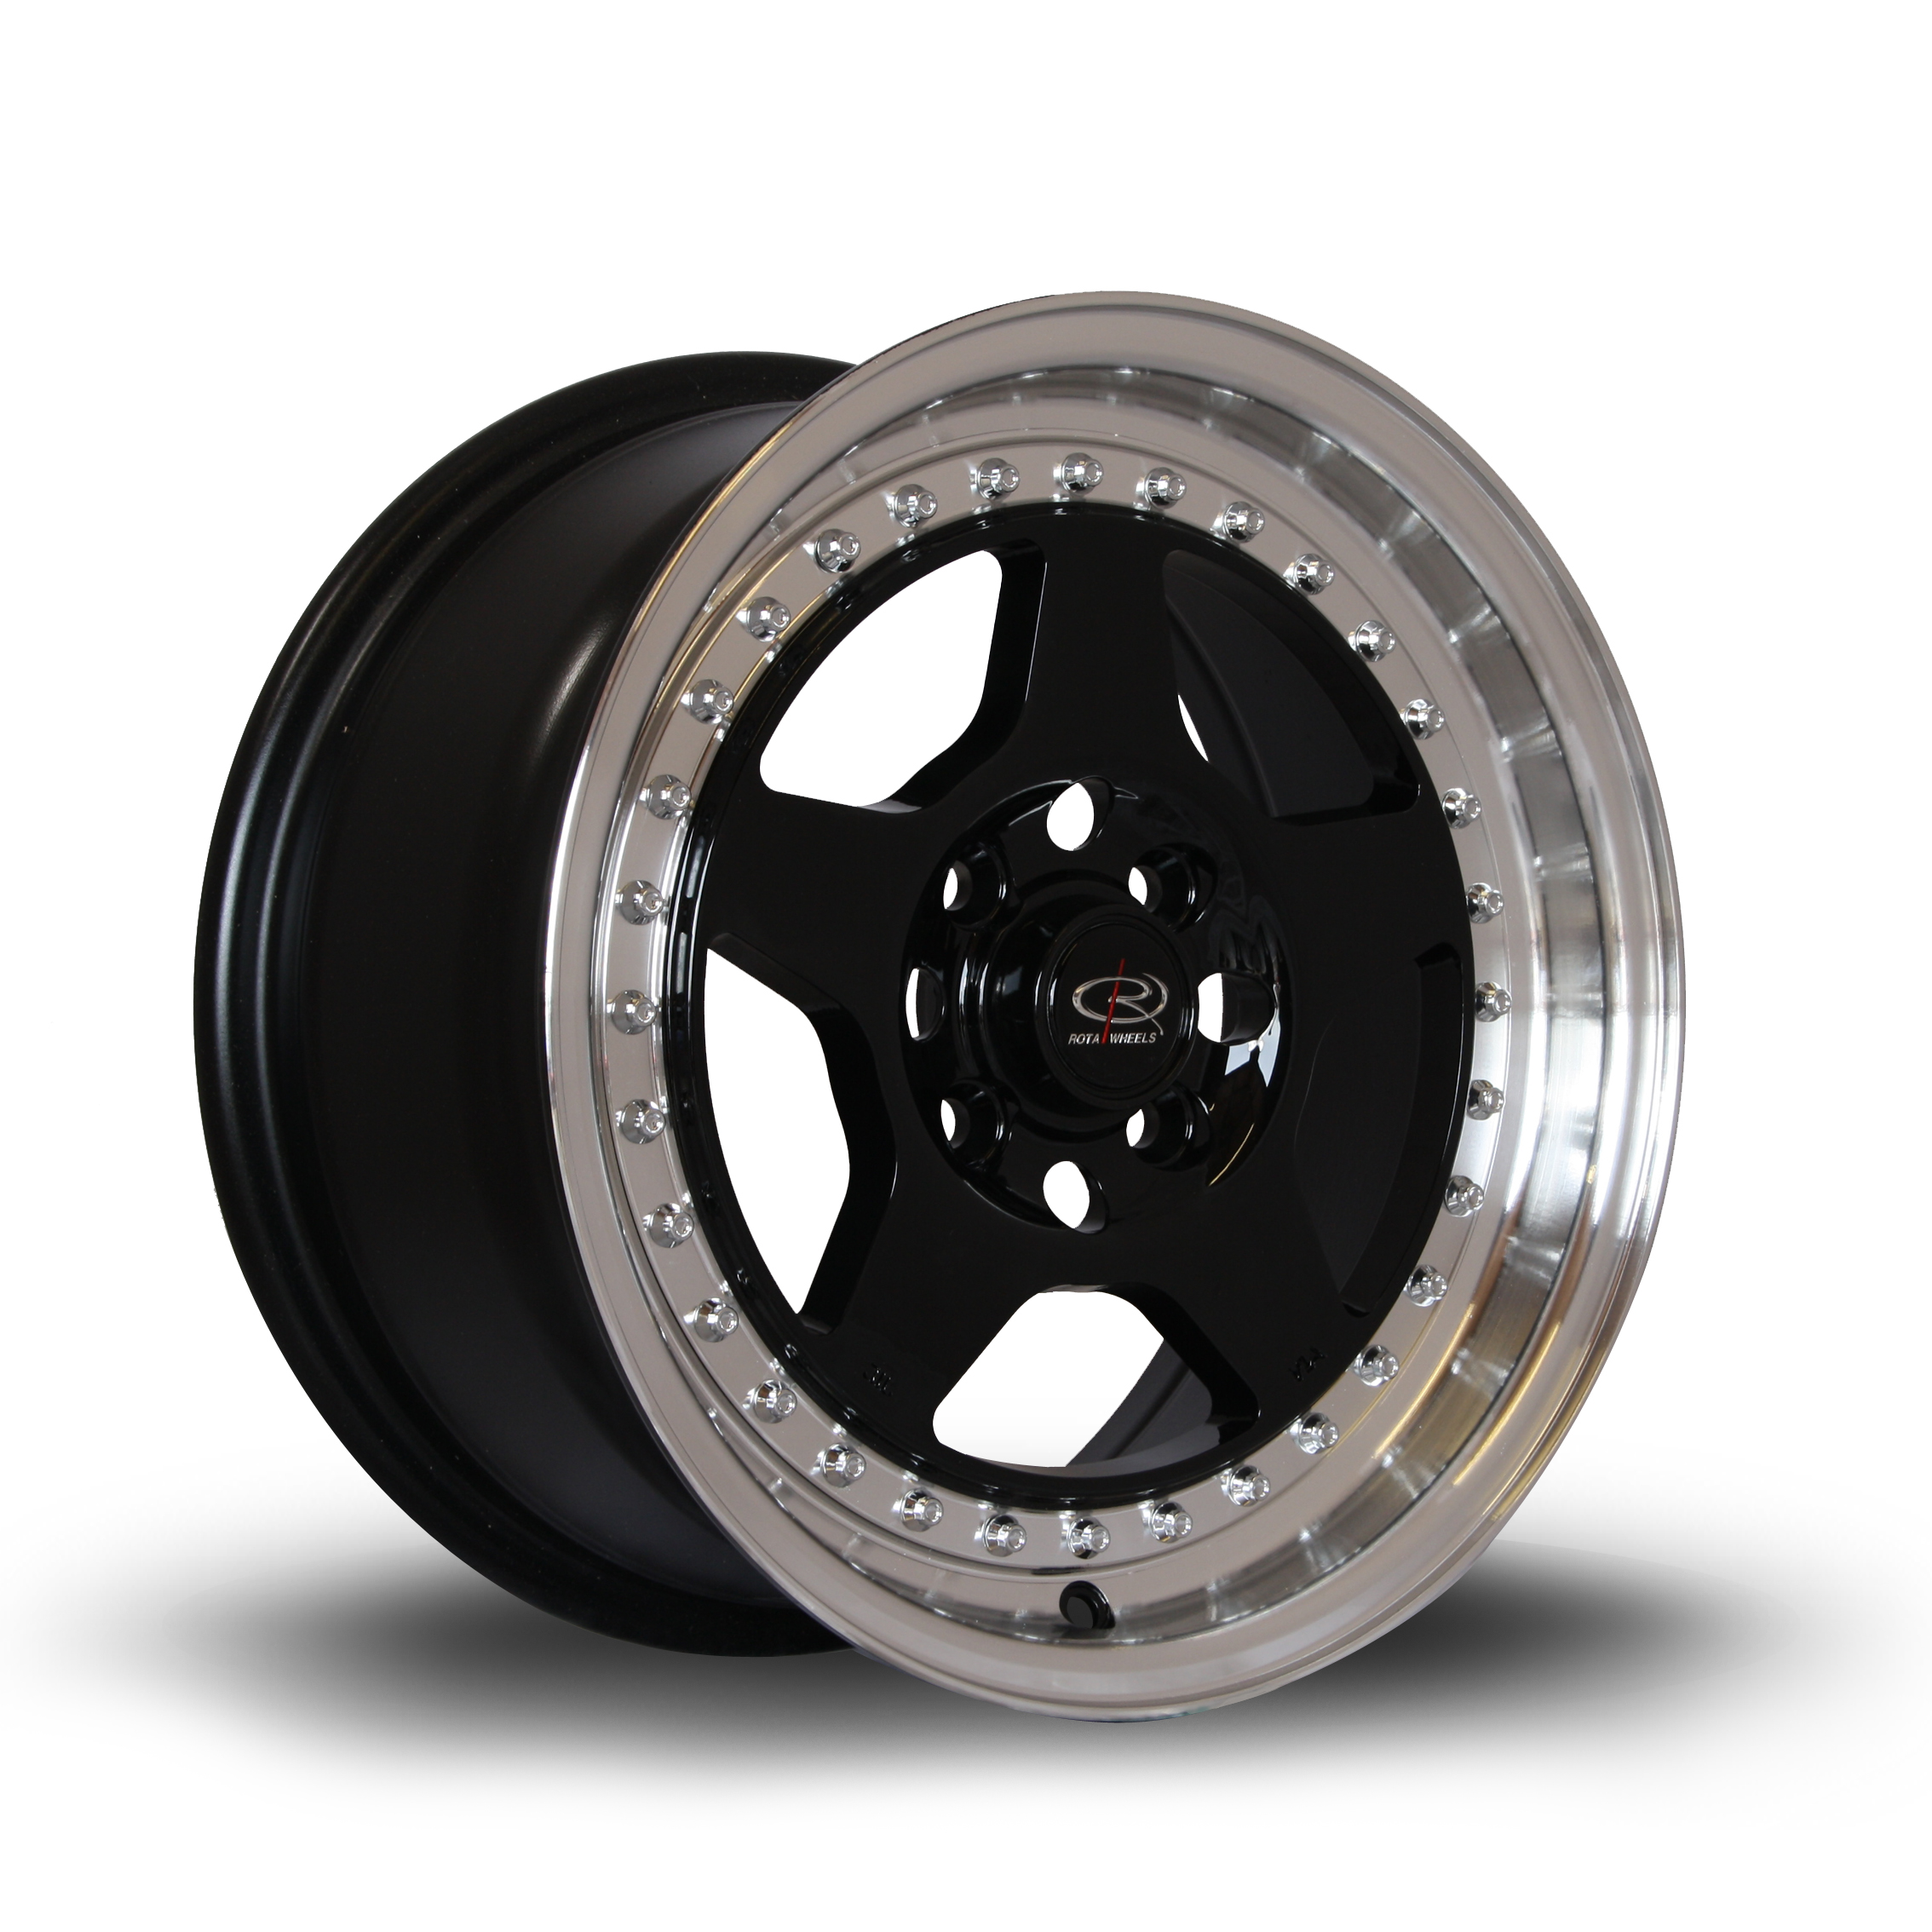 Rota Kyusha wheels